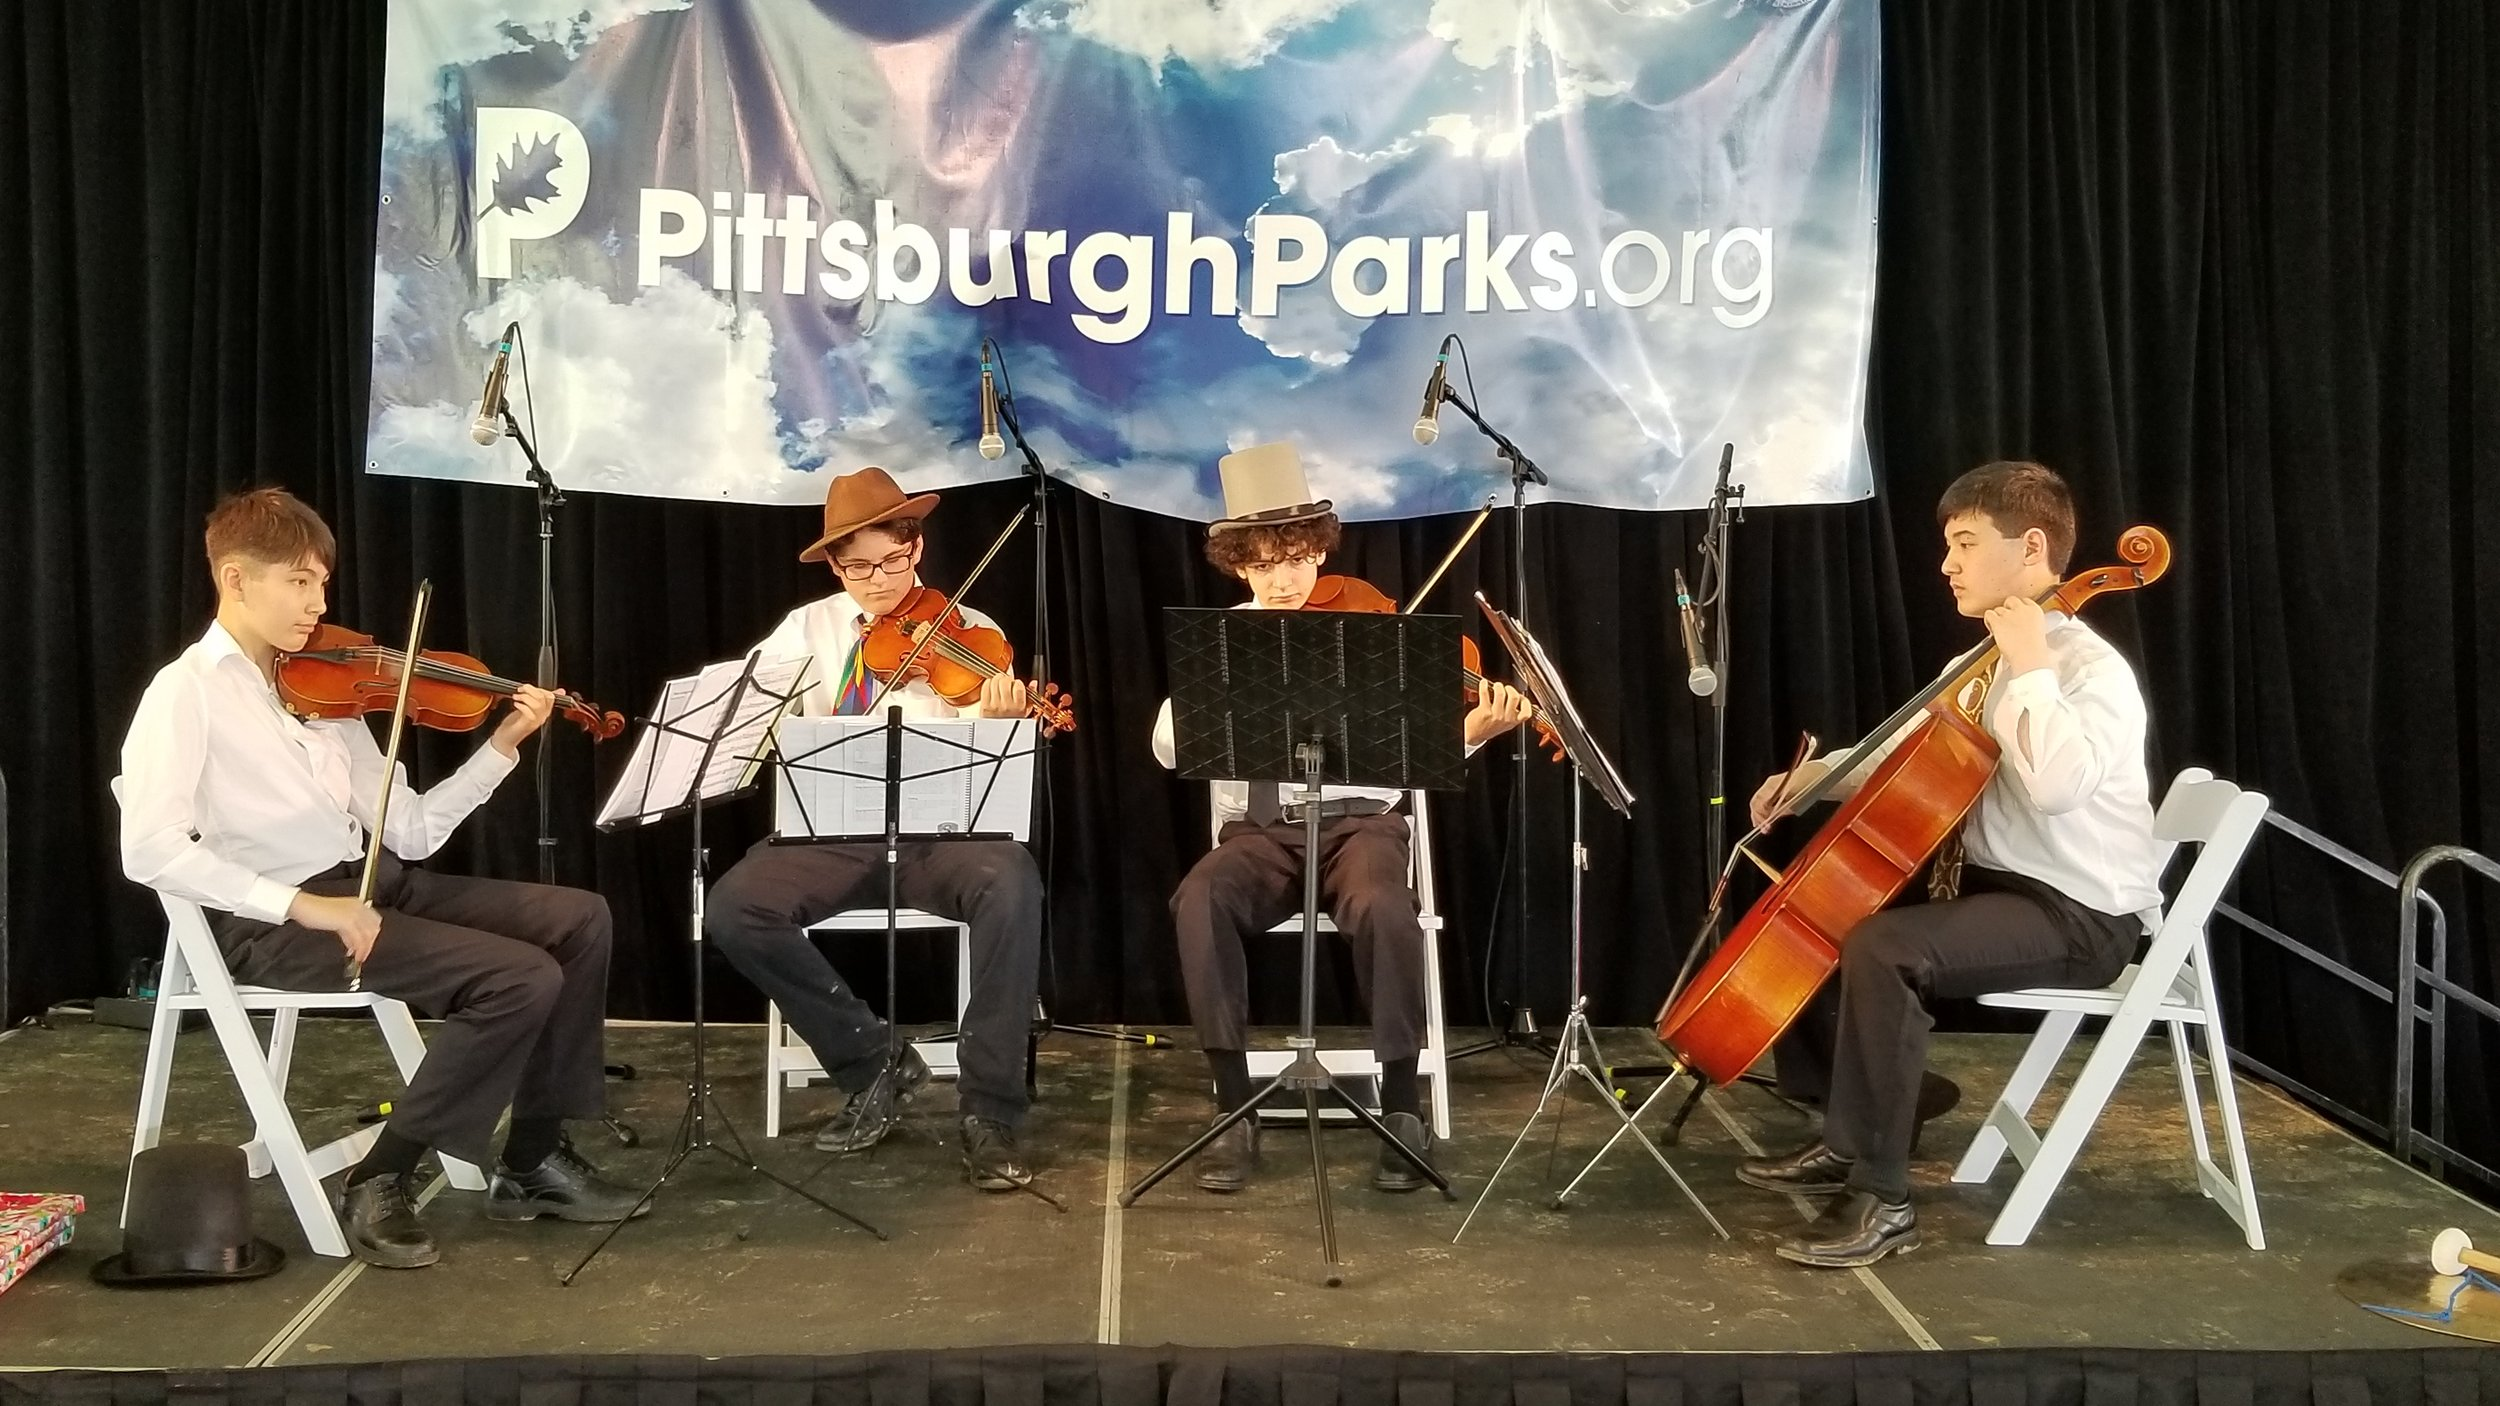 Annual Hat Luncheon - Saturday, May 4, 2019The UpBeat Quartet - Harry, Hector, Jonah, and Nick - performed for this prestigious, sold-out event, sponsored by the Pittsburgh Parks Conservancy to raise funds to support renovation and maintenance of our city parks.